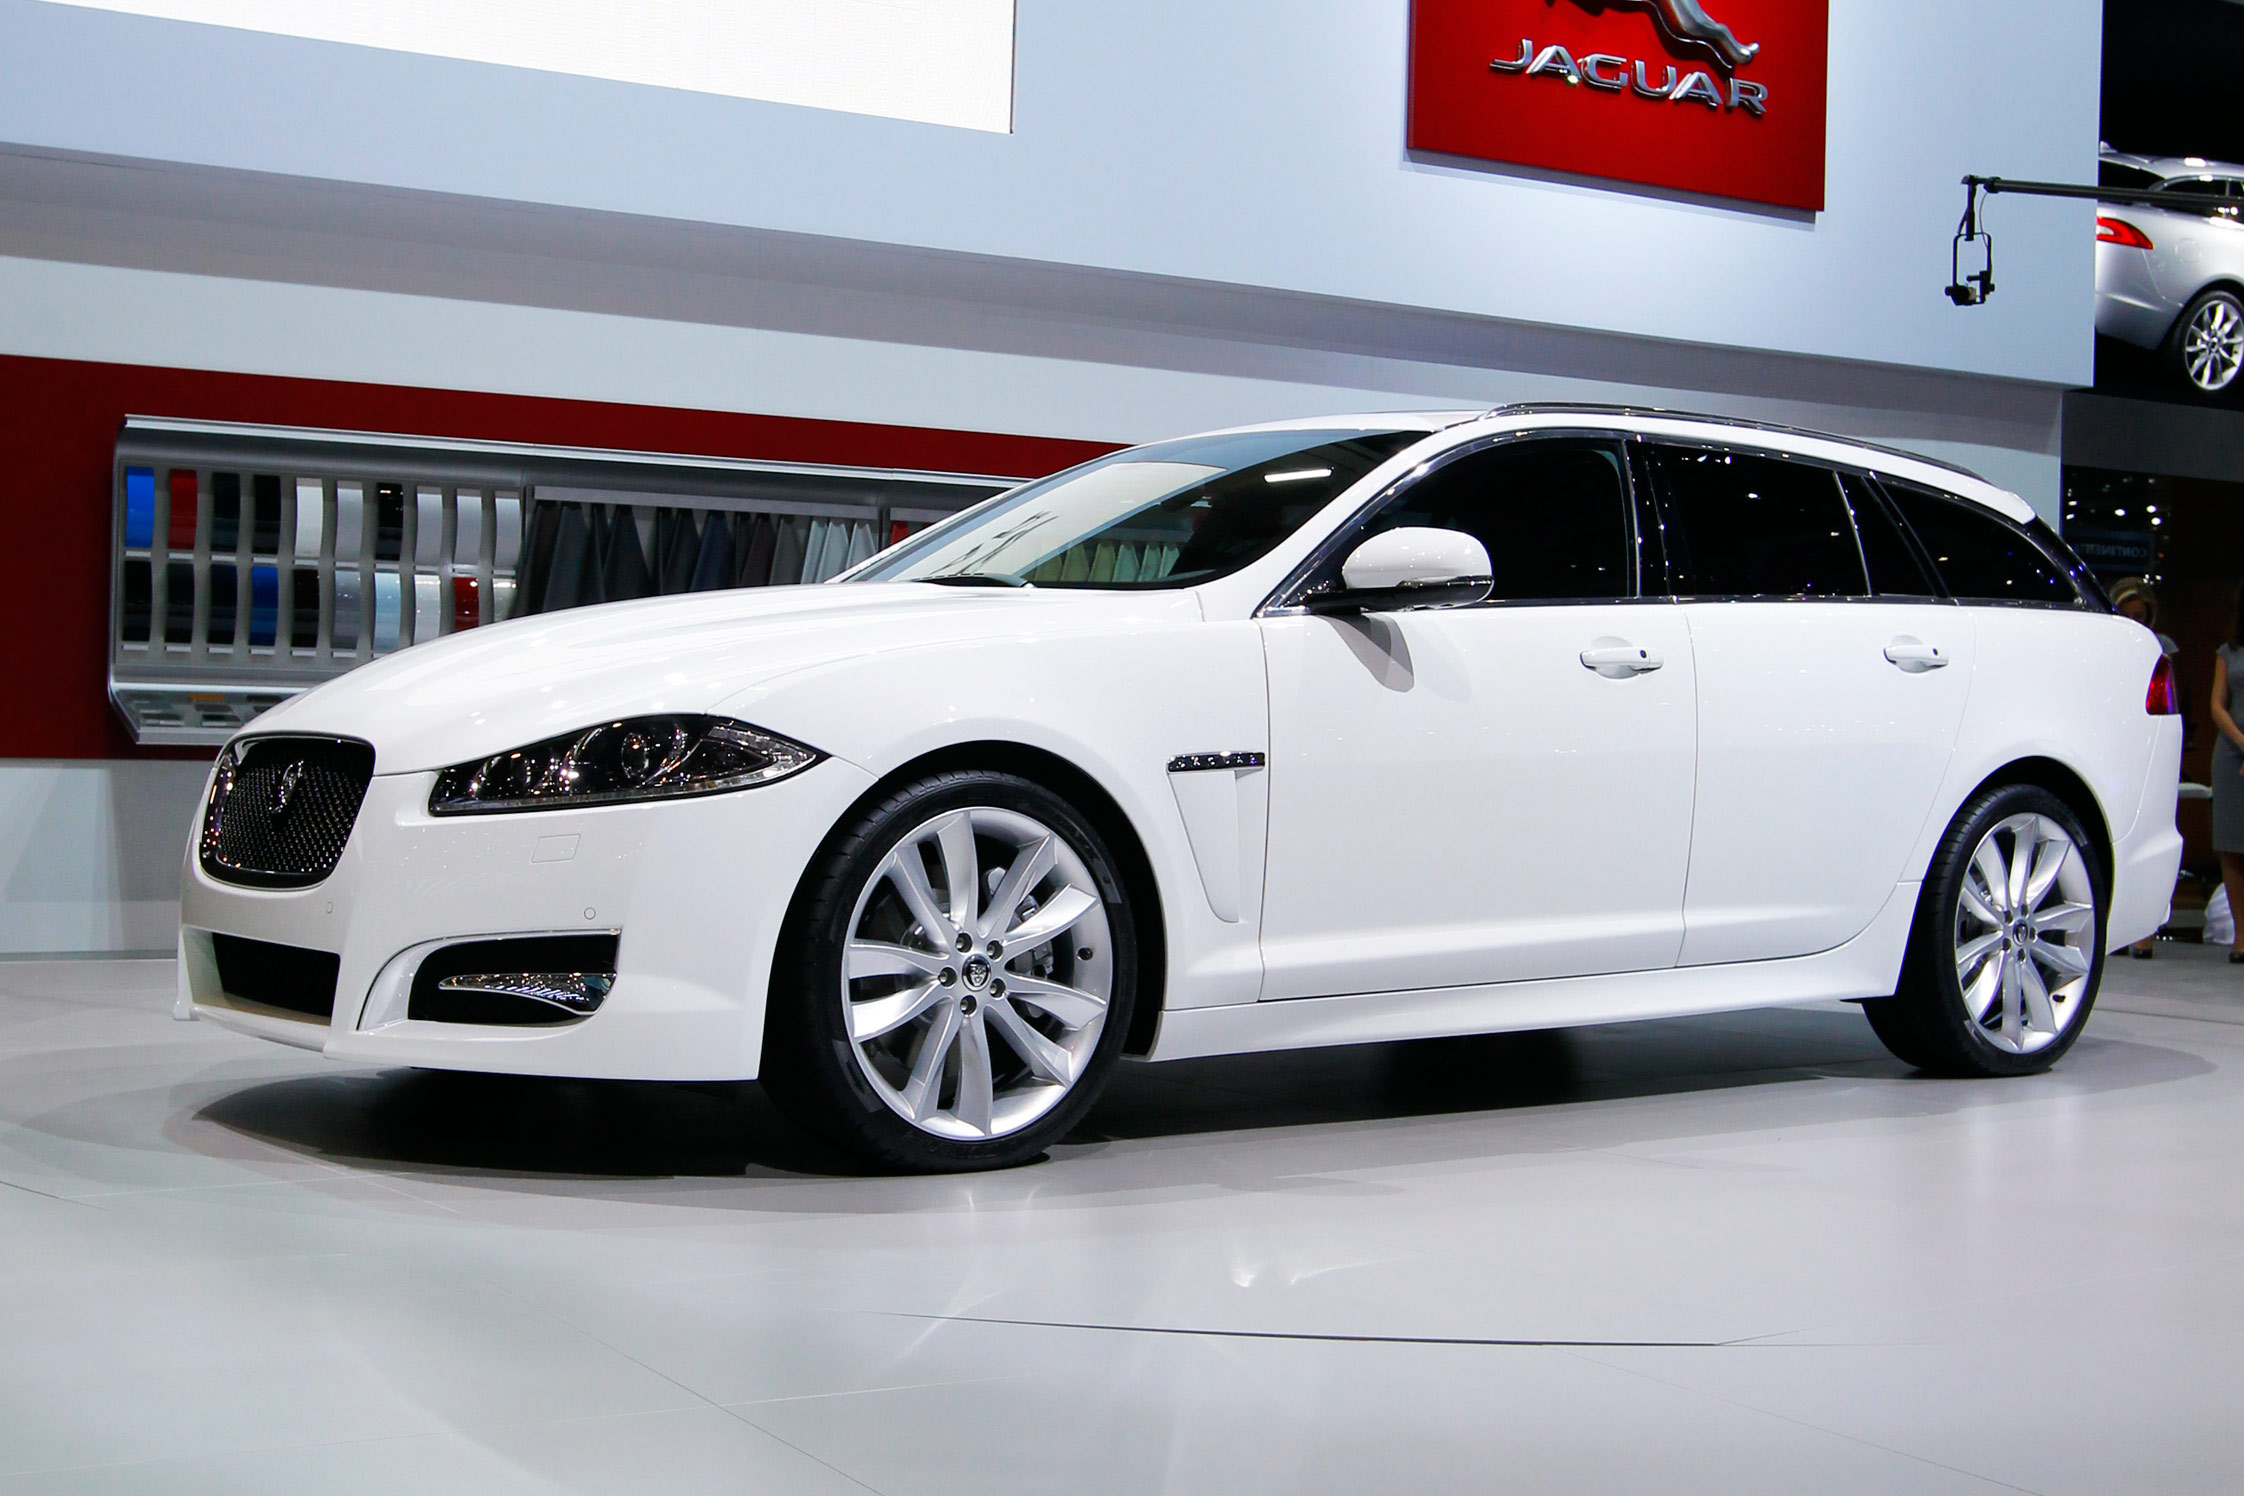 jaguar xf sportbrake salon de gen ve 2012. Black Bedroom Furniture Sets. Home Design Ideas